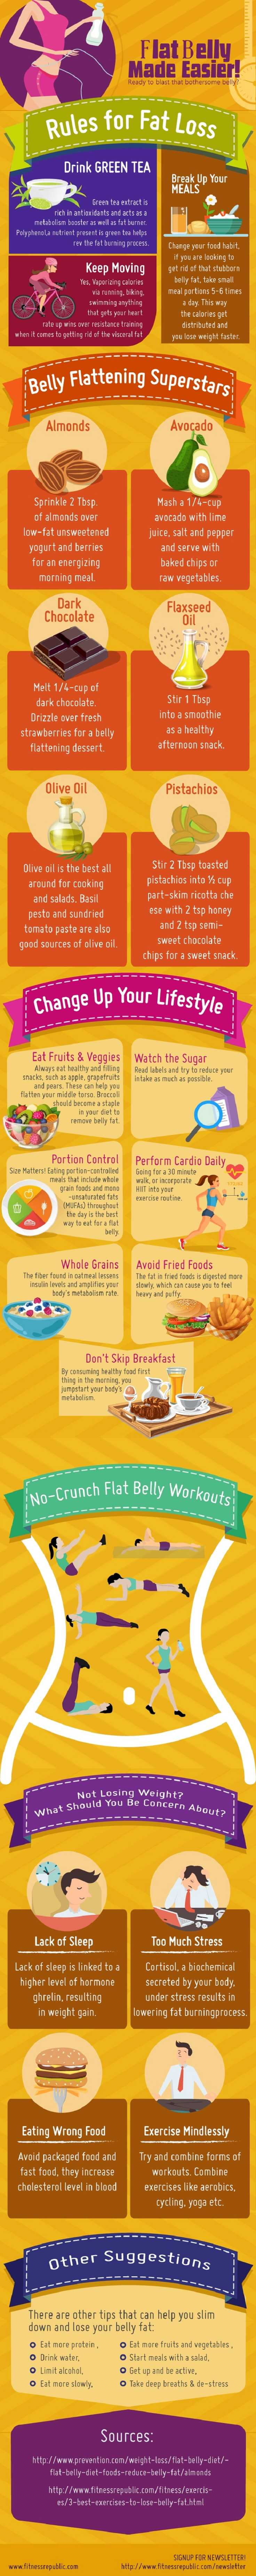 How To Attain A Flat Belly And Lose Fat